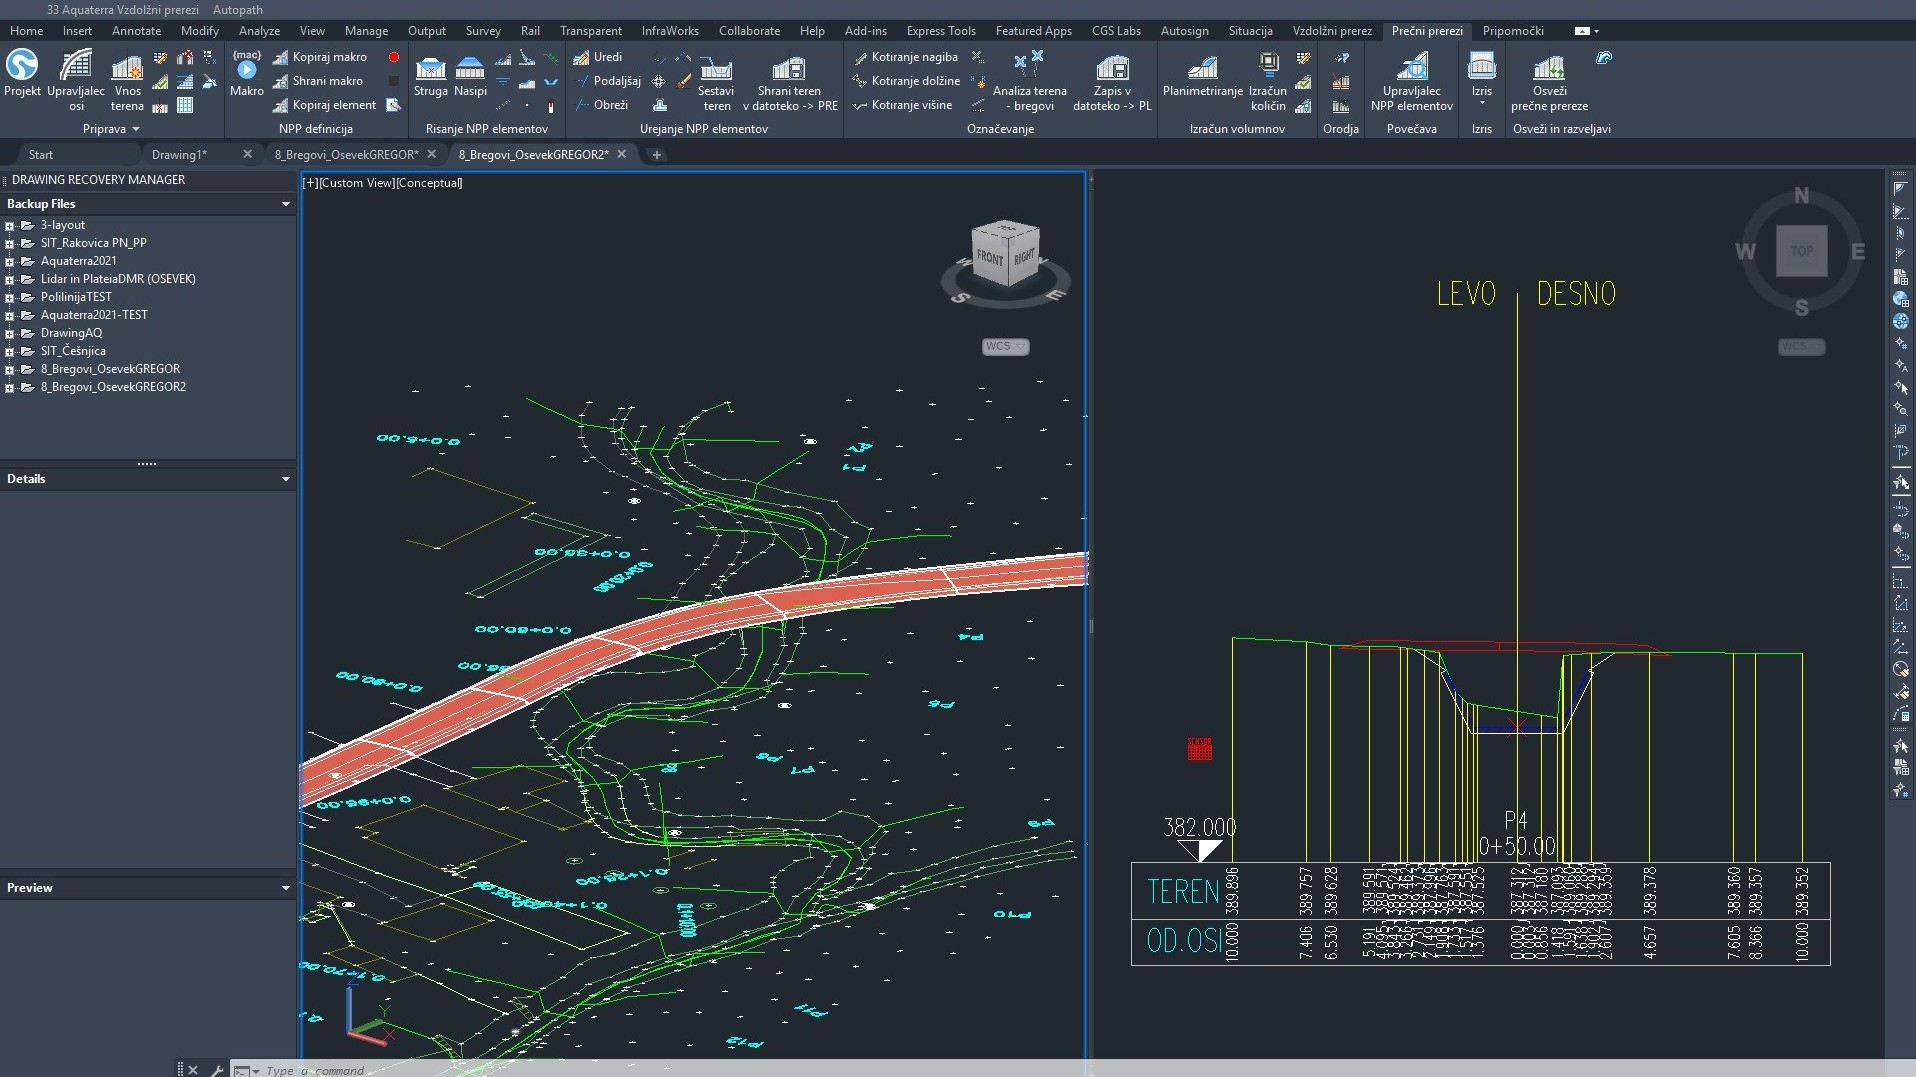 Aquaterra Bim Software For Canal Channel And River Works Design Cgs Labs